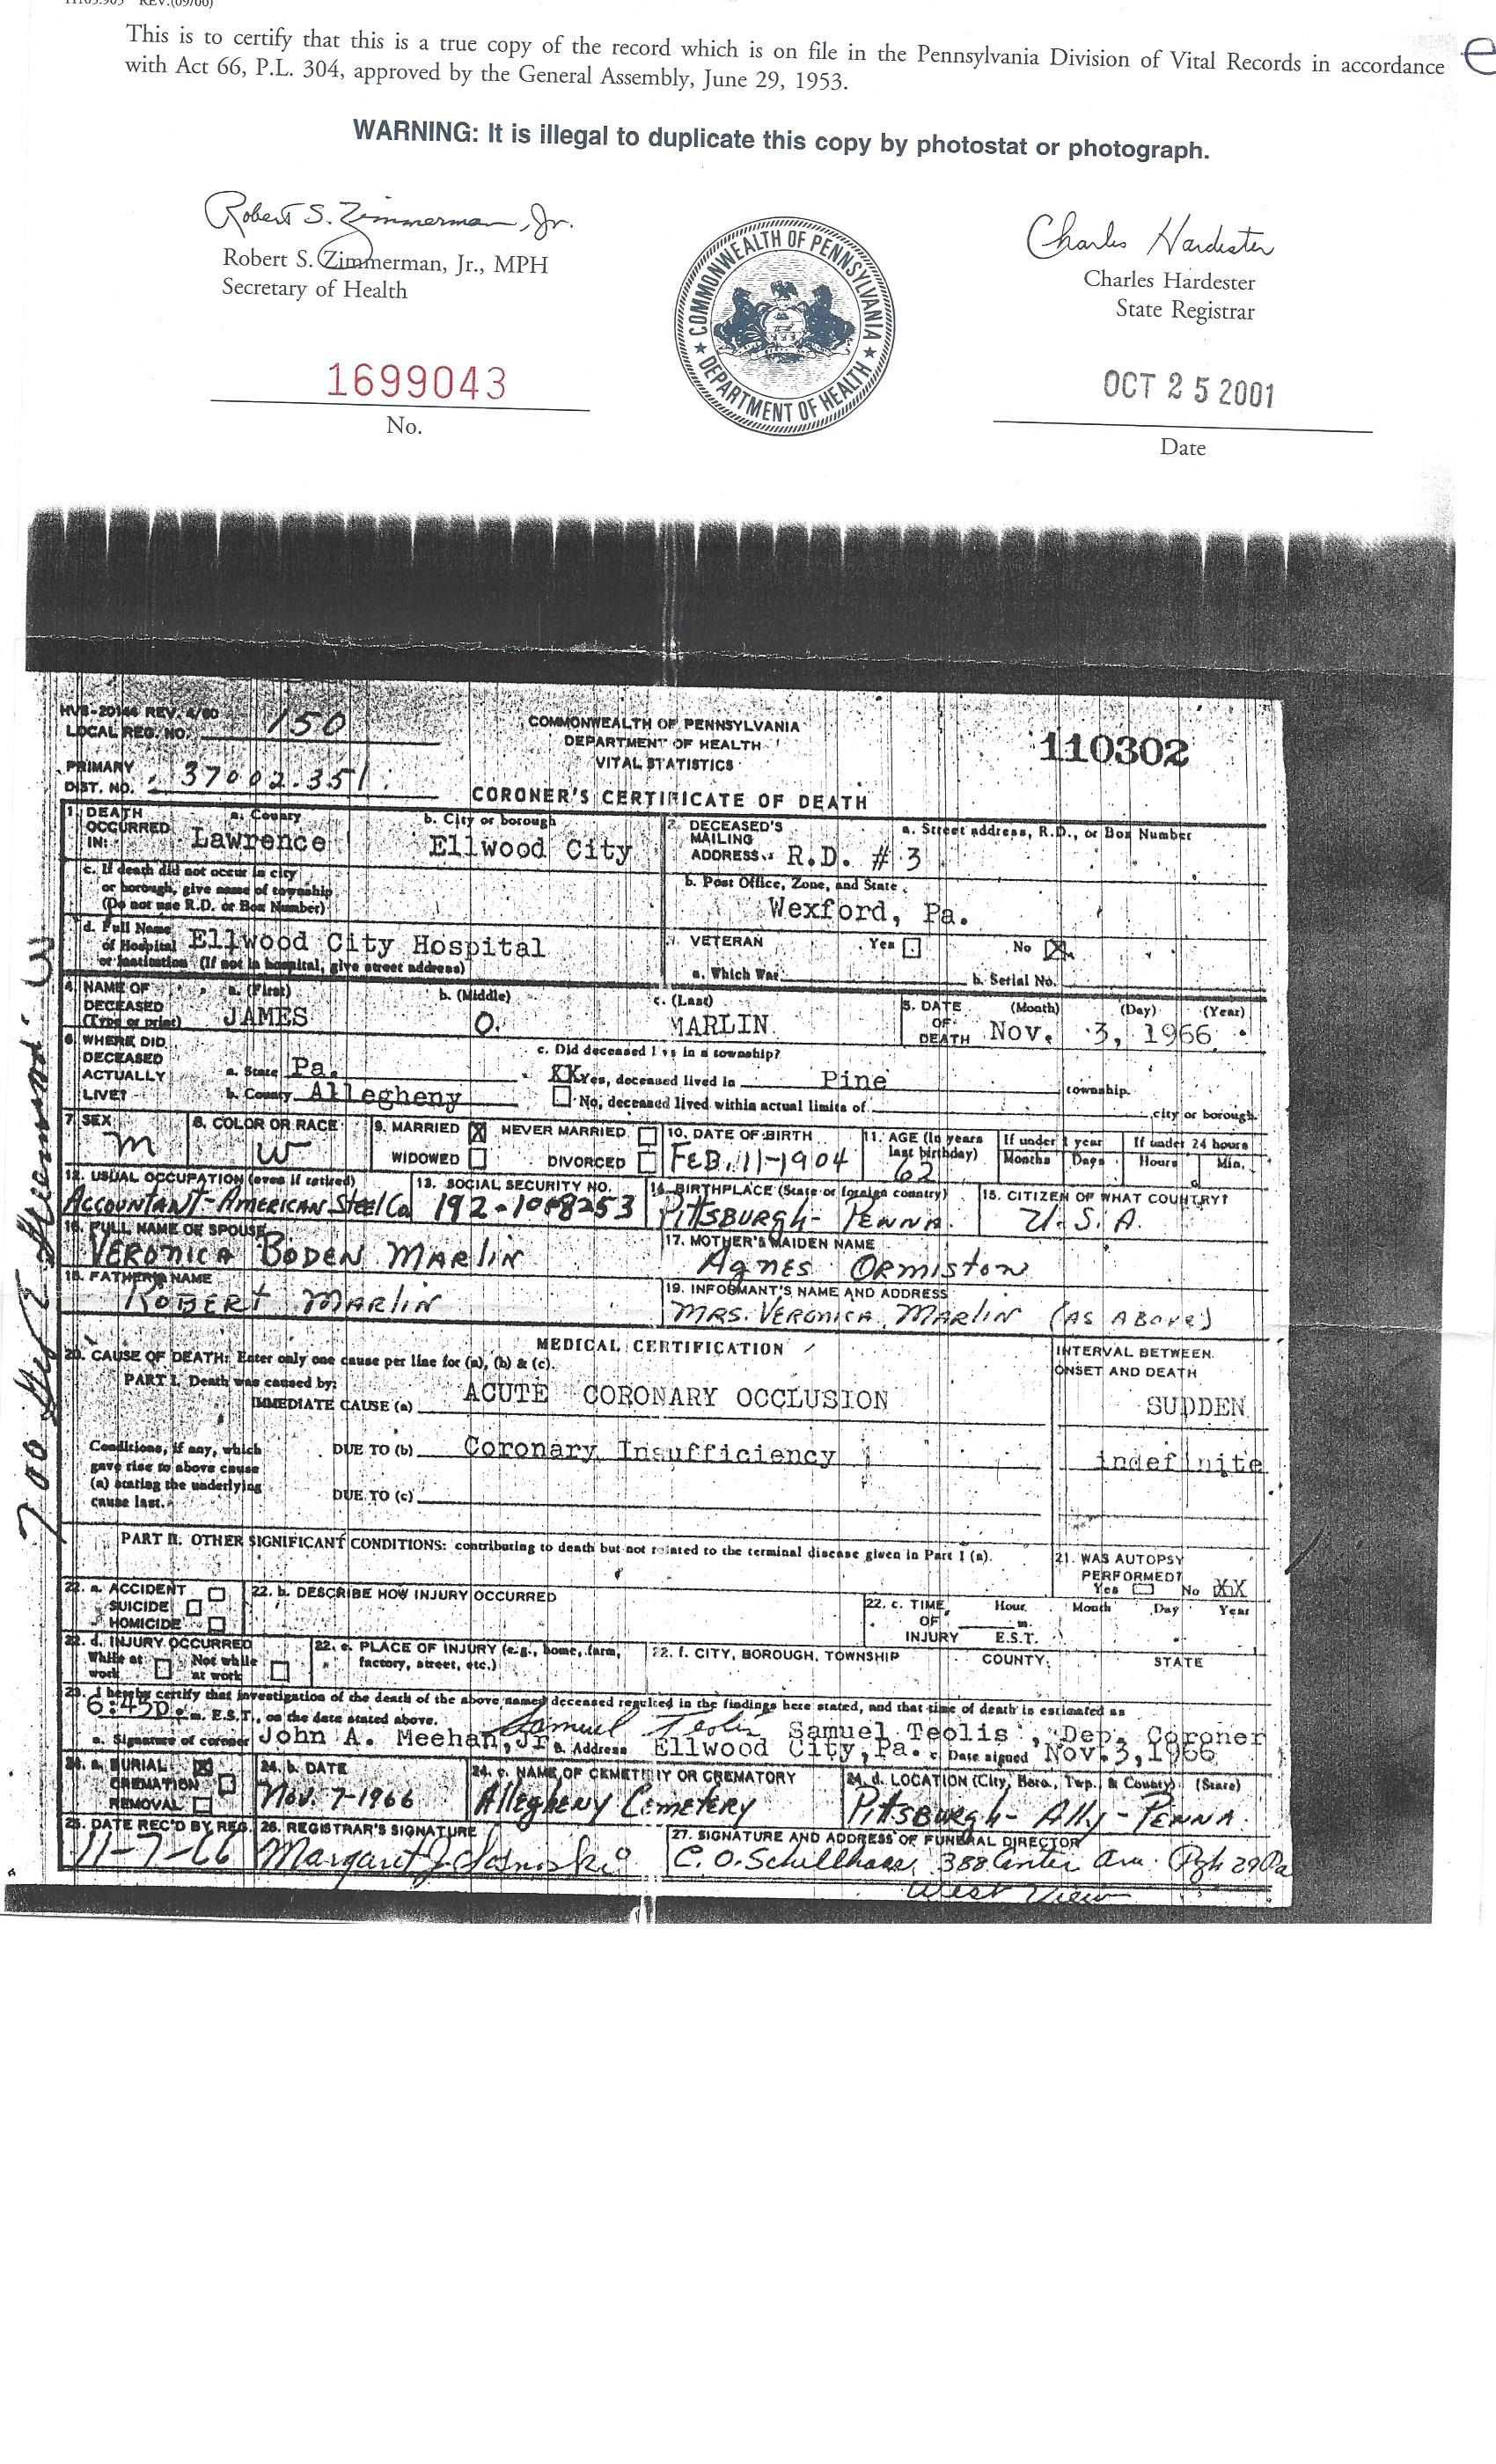 James o marlin death certificate married to second wife death certificate xflitez Images